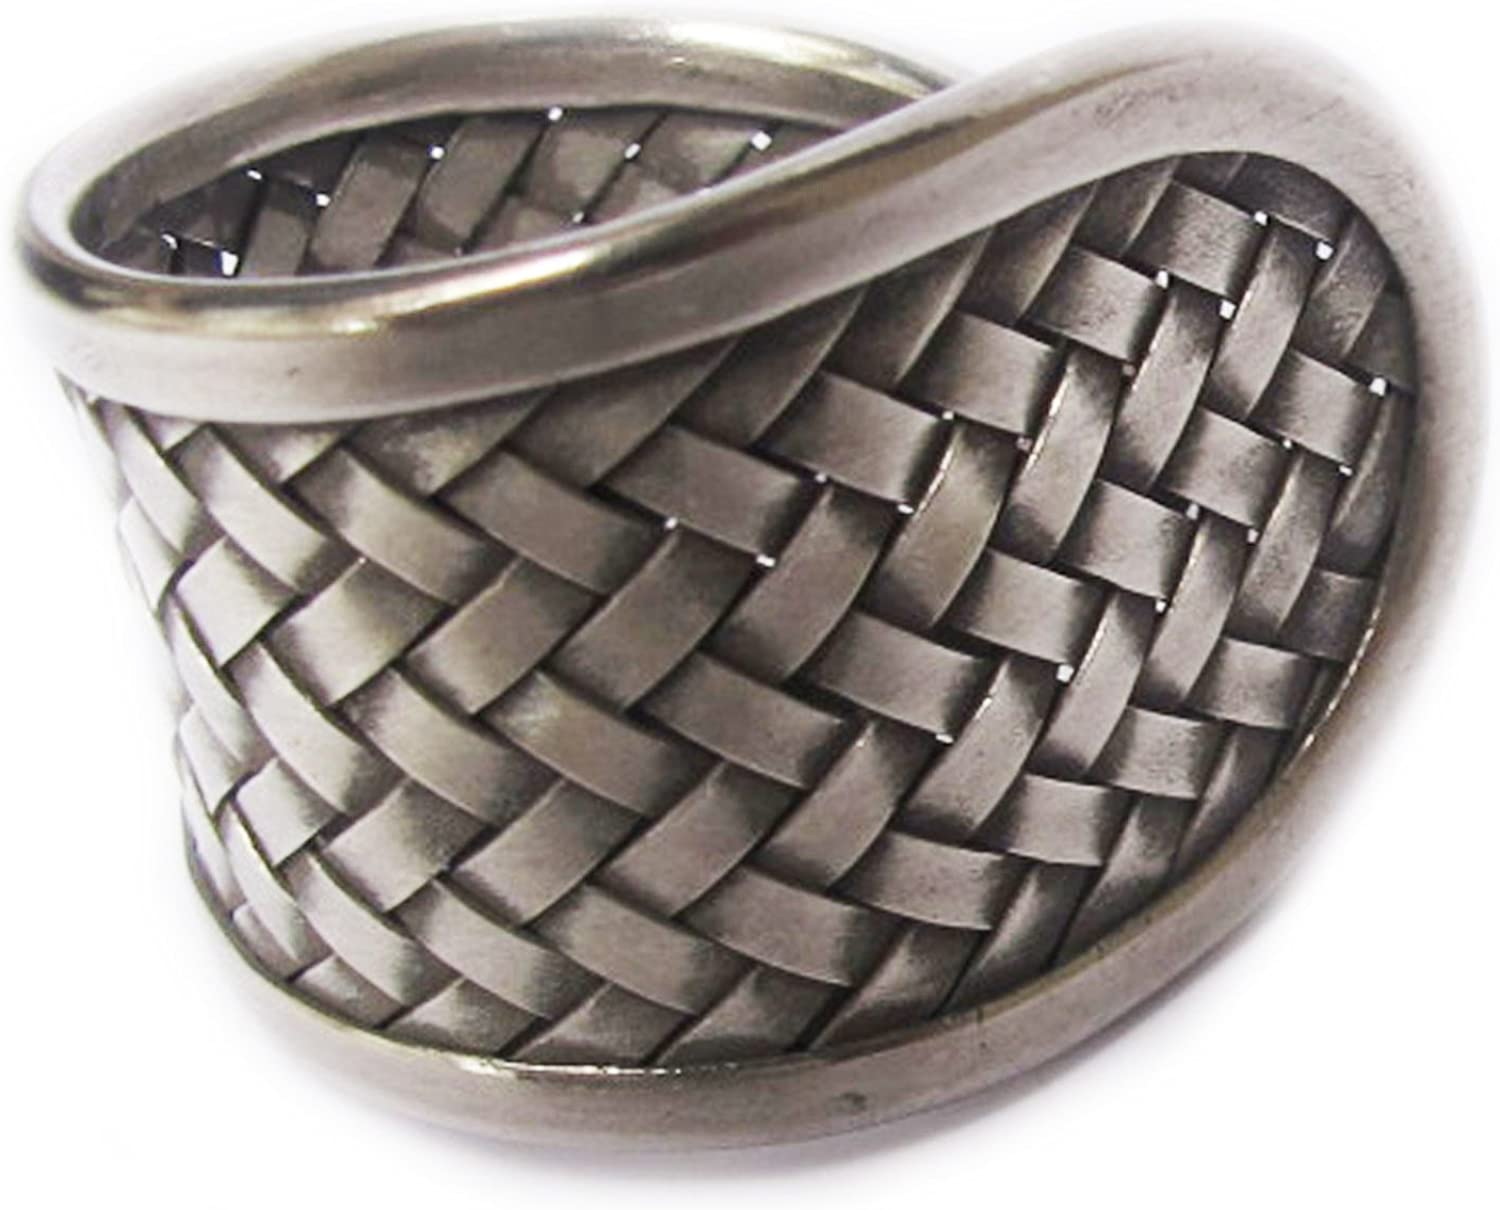 KAREAN HILL TRIBE BOX 13-102 Cool Woven WEIGHT 9.57G PURE 99.5/% NICE CLASSIC GENUINE WOVEN THAI KAREN HILL TRIBE SILVER RING SIZE NO.8 BY HANDMADE Adjustable 8-12